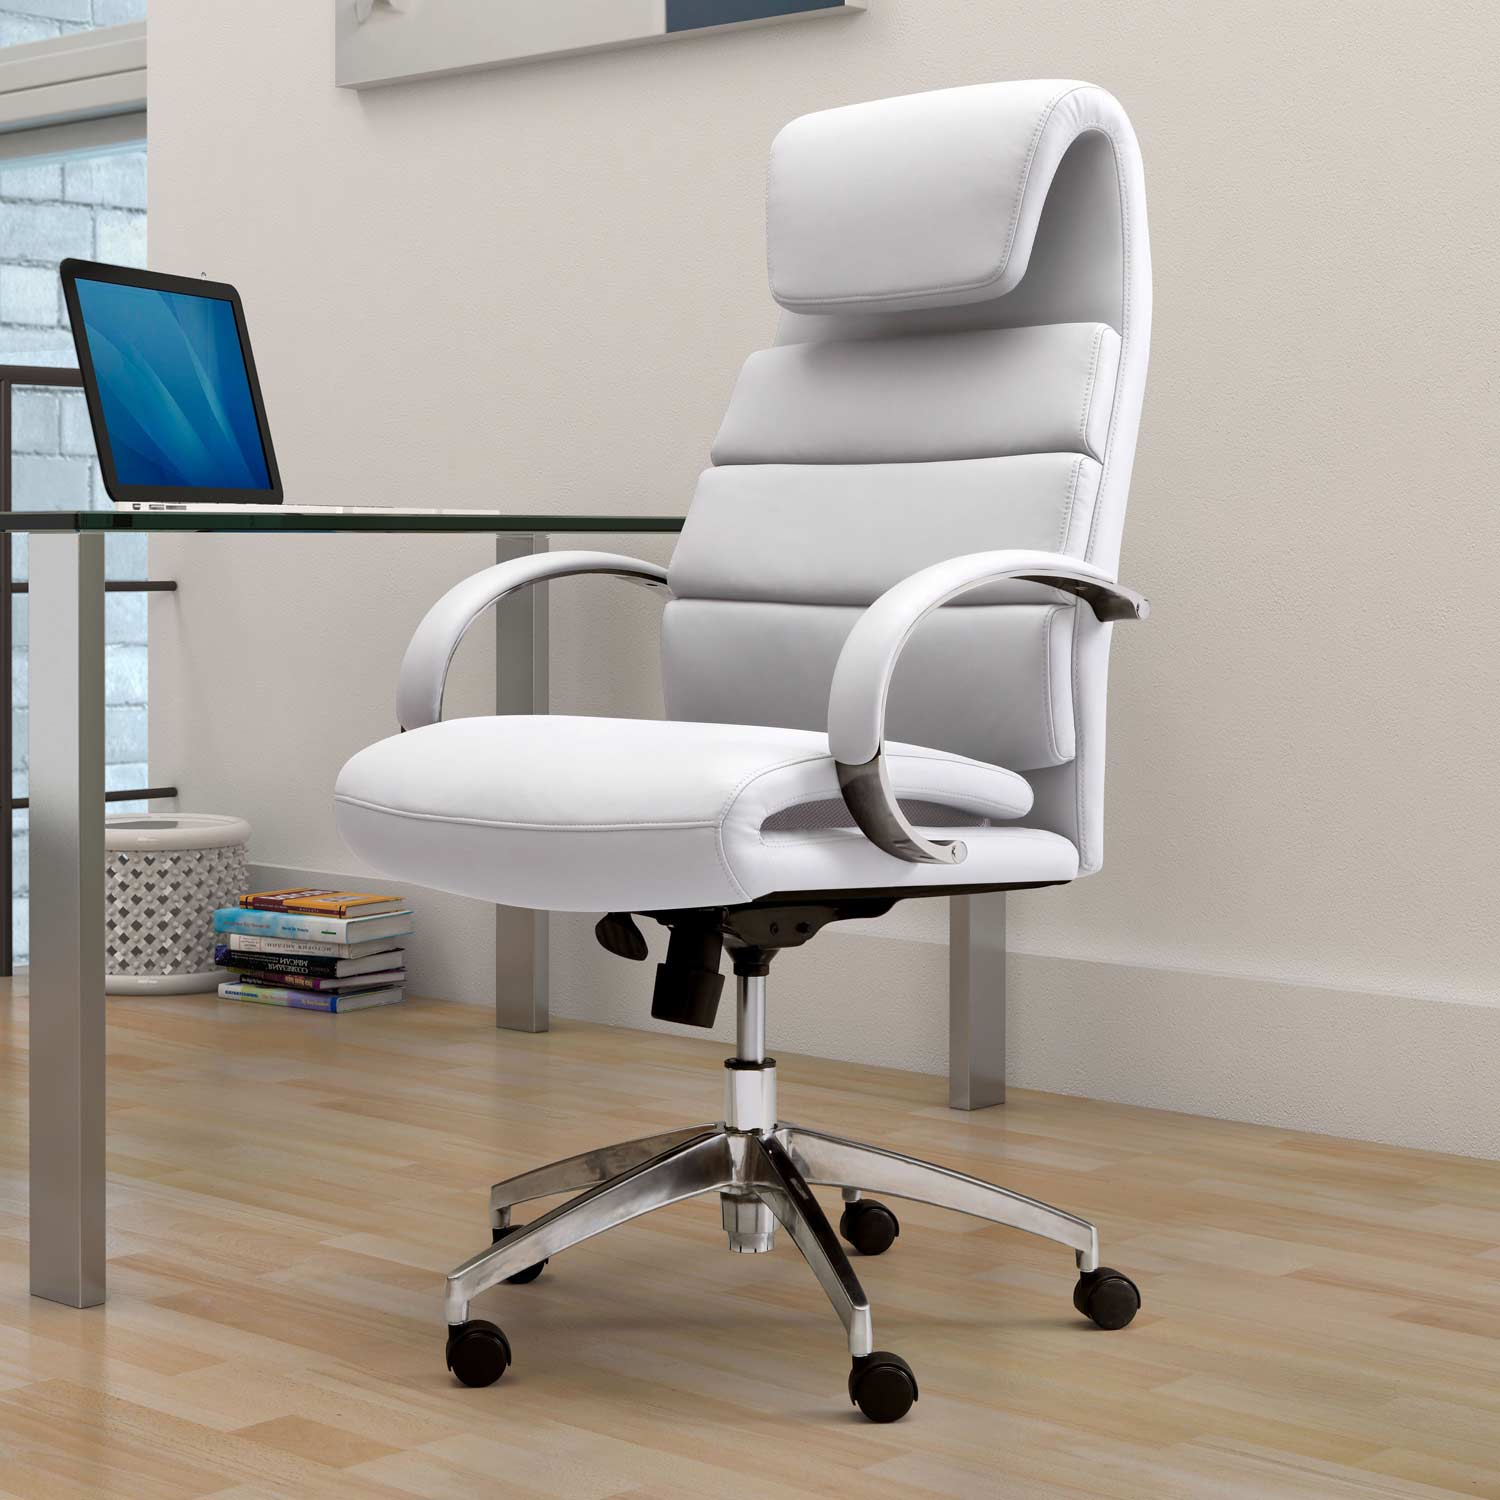 office chair comfort accessories waffle bungee target lider chrome steel white dcg stores